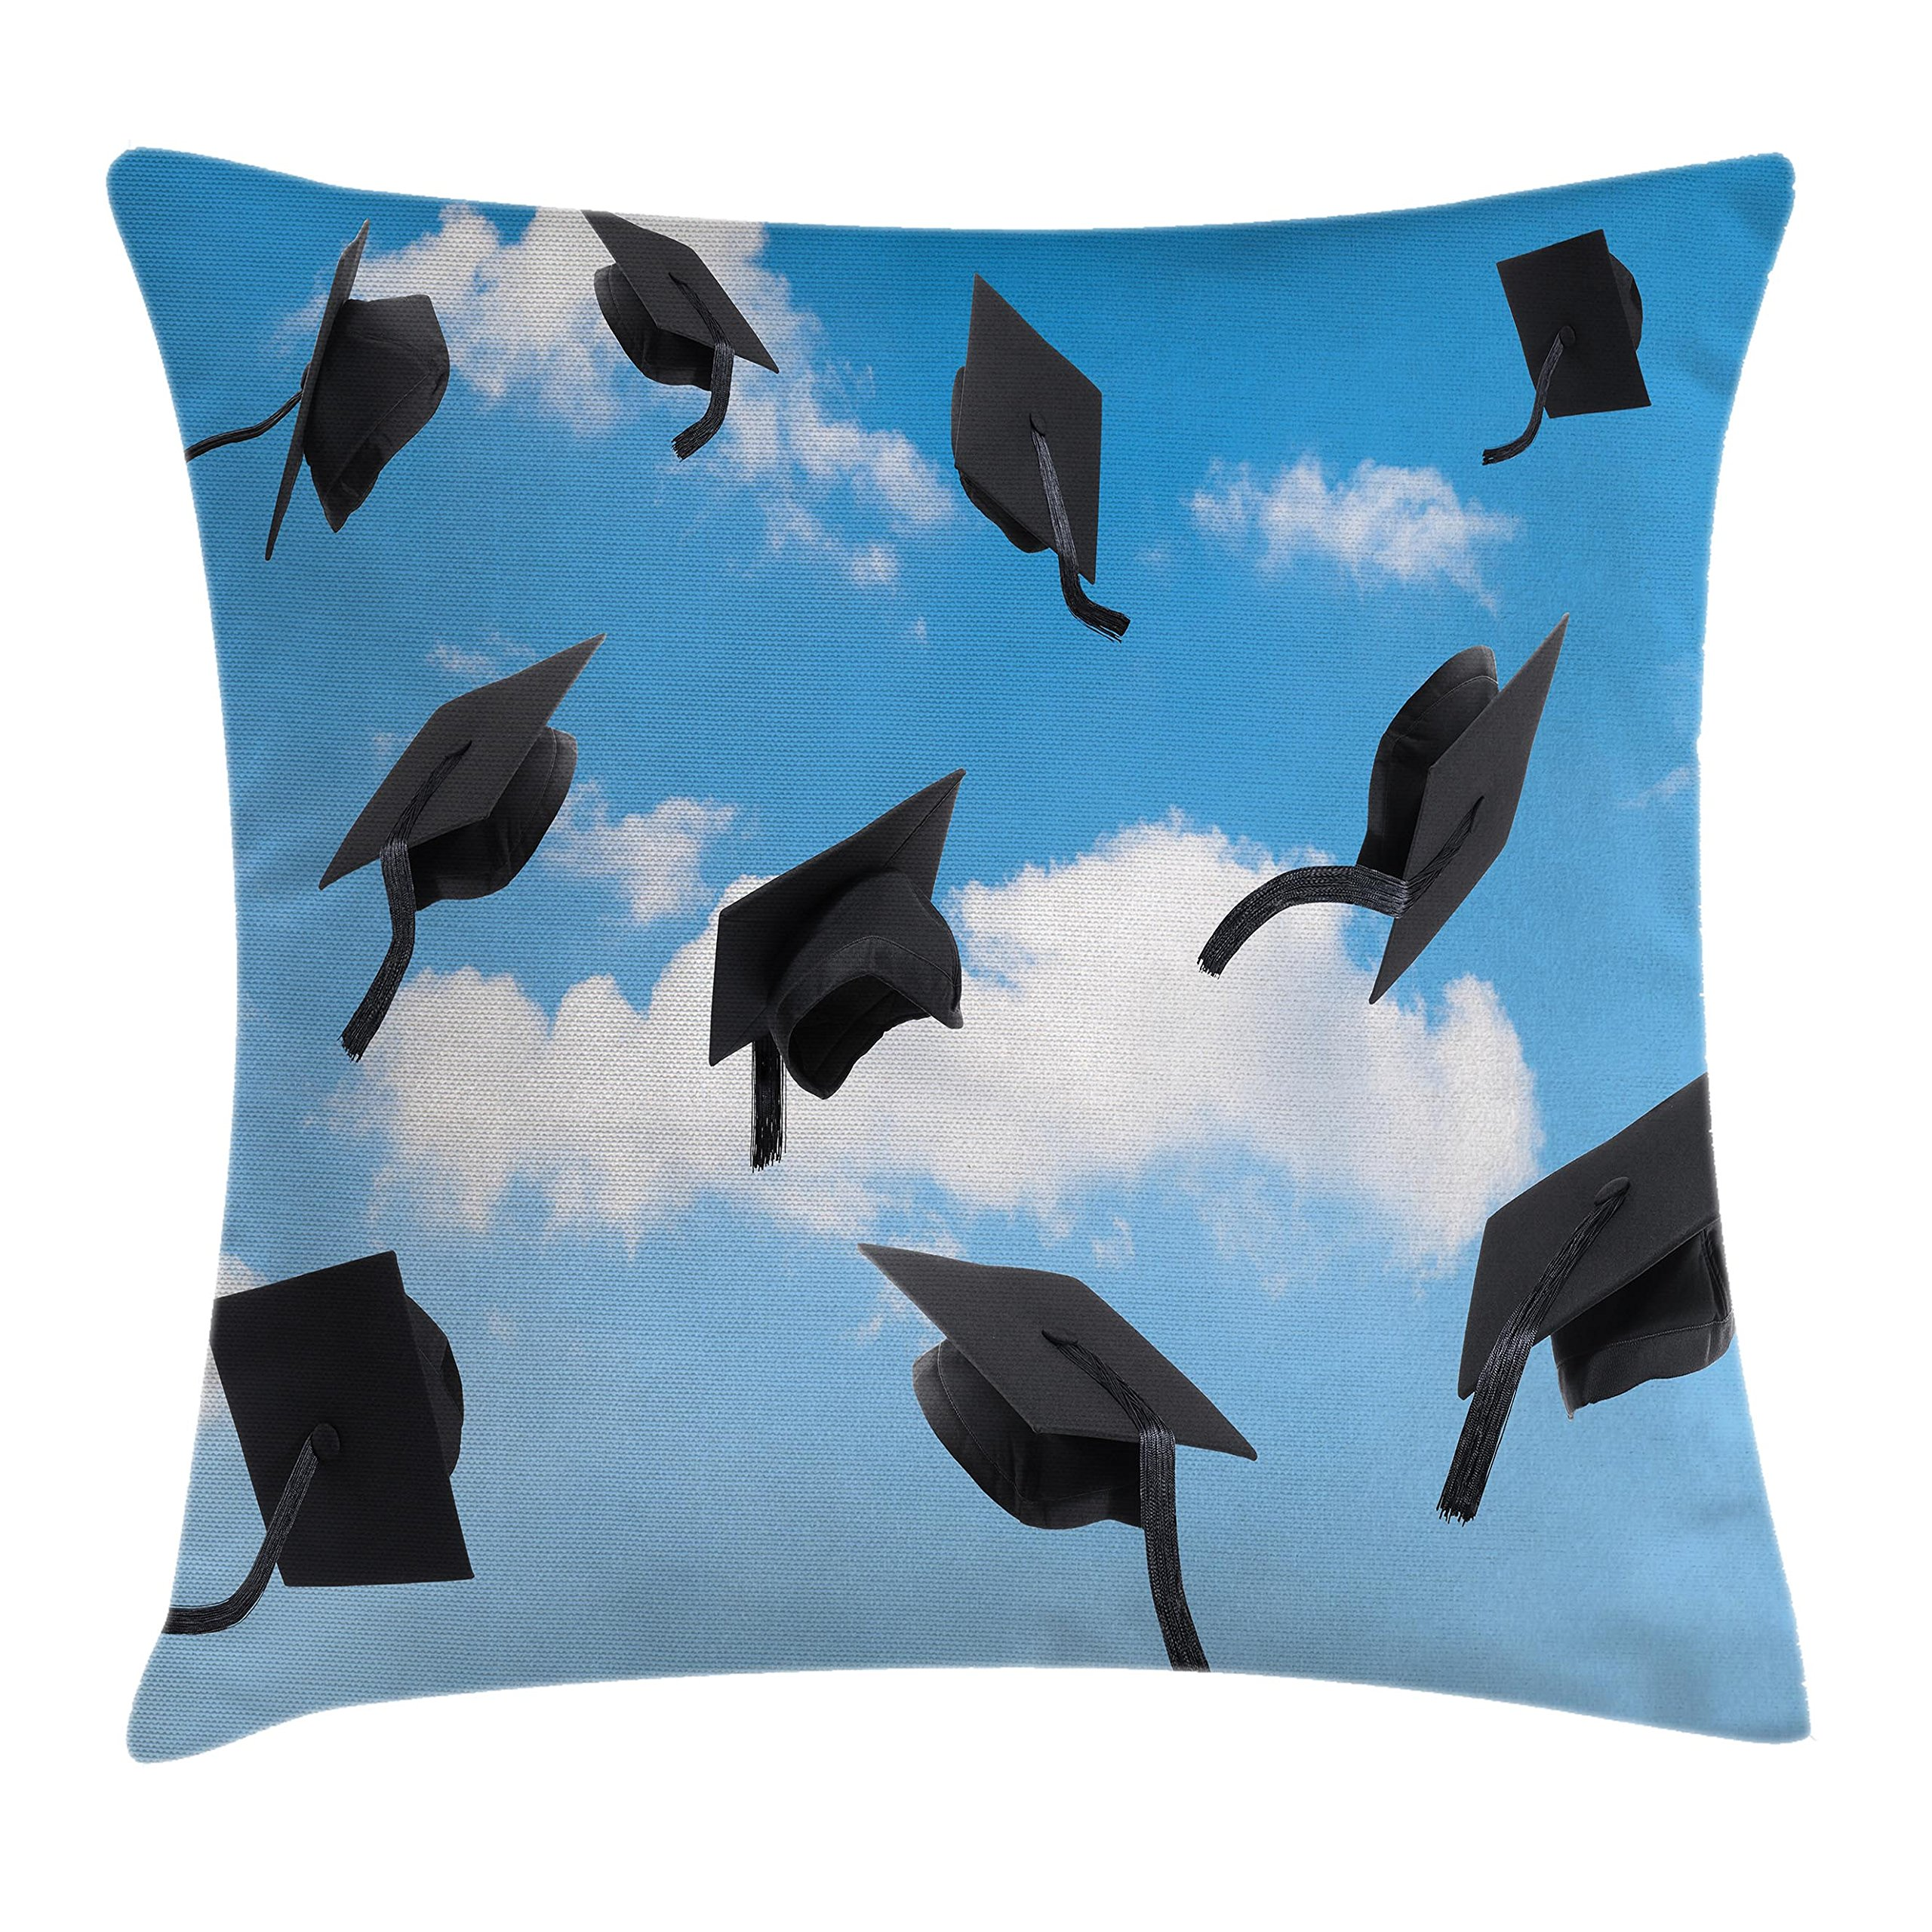 Ambesonne Graduation Throw Pillow Cushion Cover by, Caps Thrown into Sky Last of the School Highschool College Ceremony Picture, Decorative Square Accent Pillow Case, 18 X 18 Inches, Blue Black